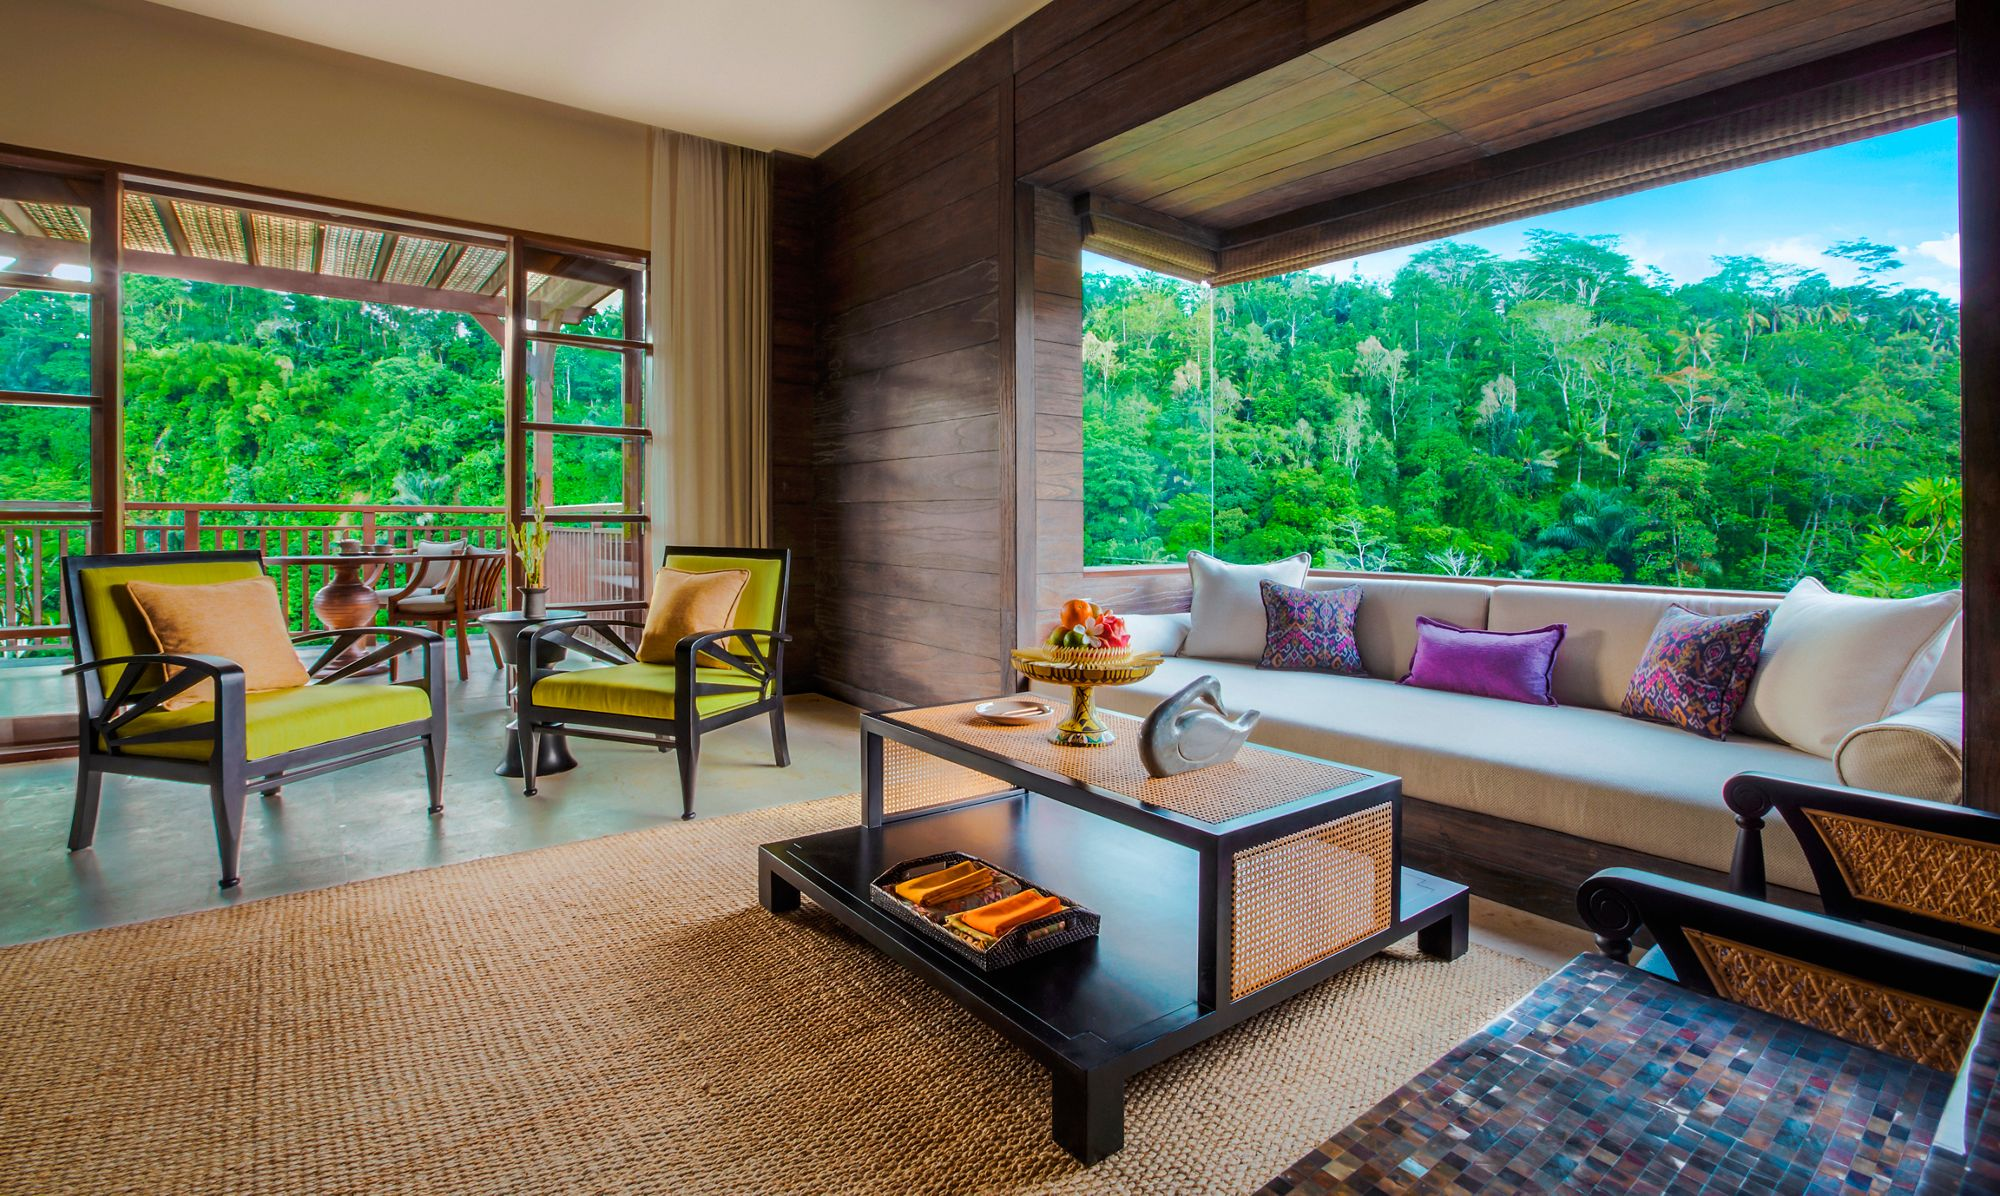 Suite living room with an open terrace, Balinese furniture and a daybed tucked into an expansive windowed alcove